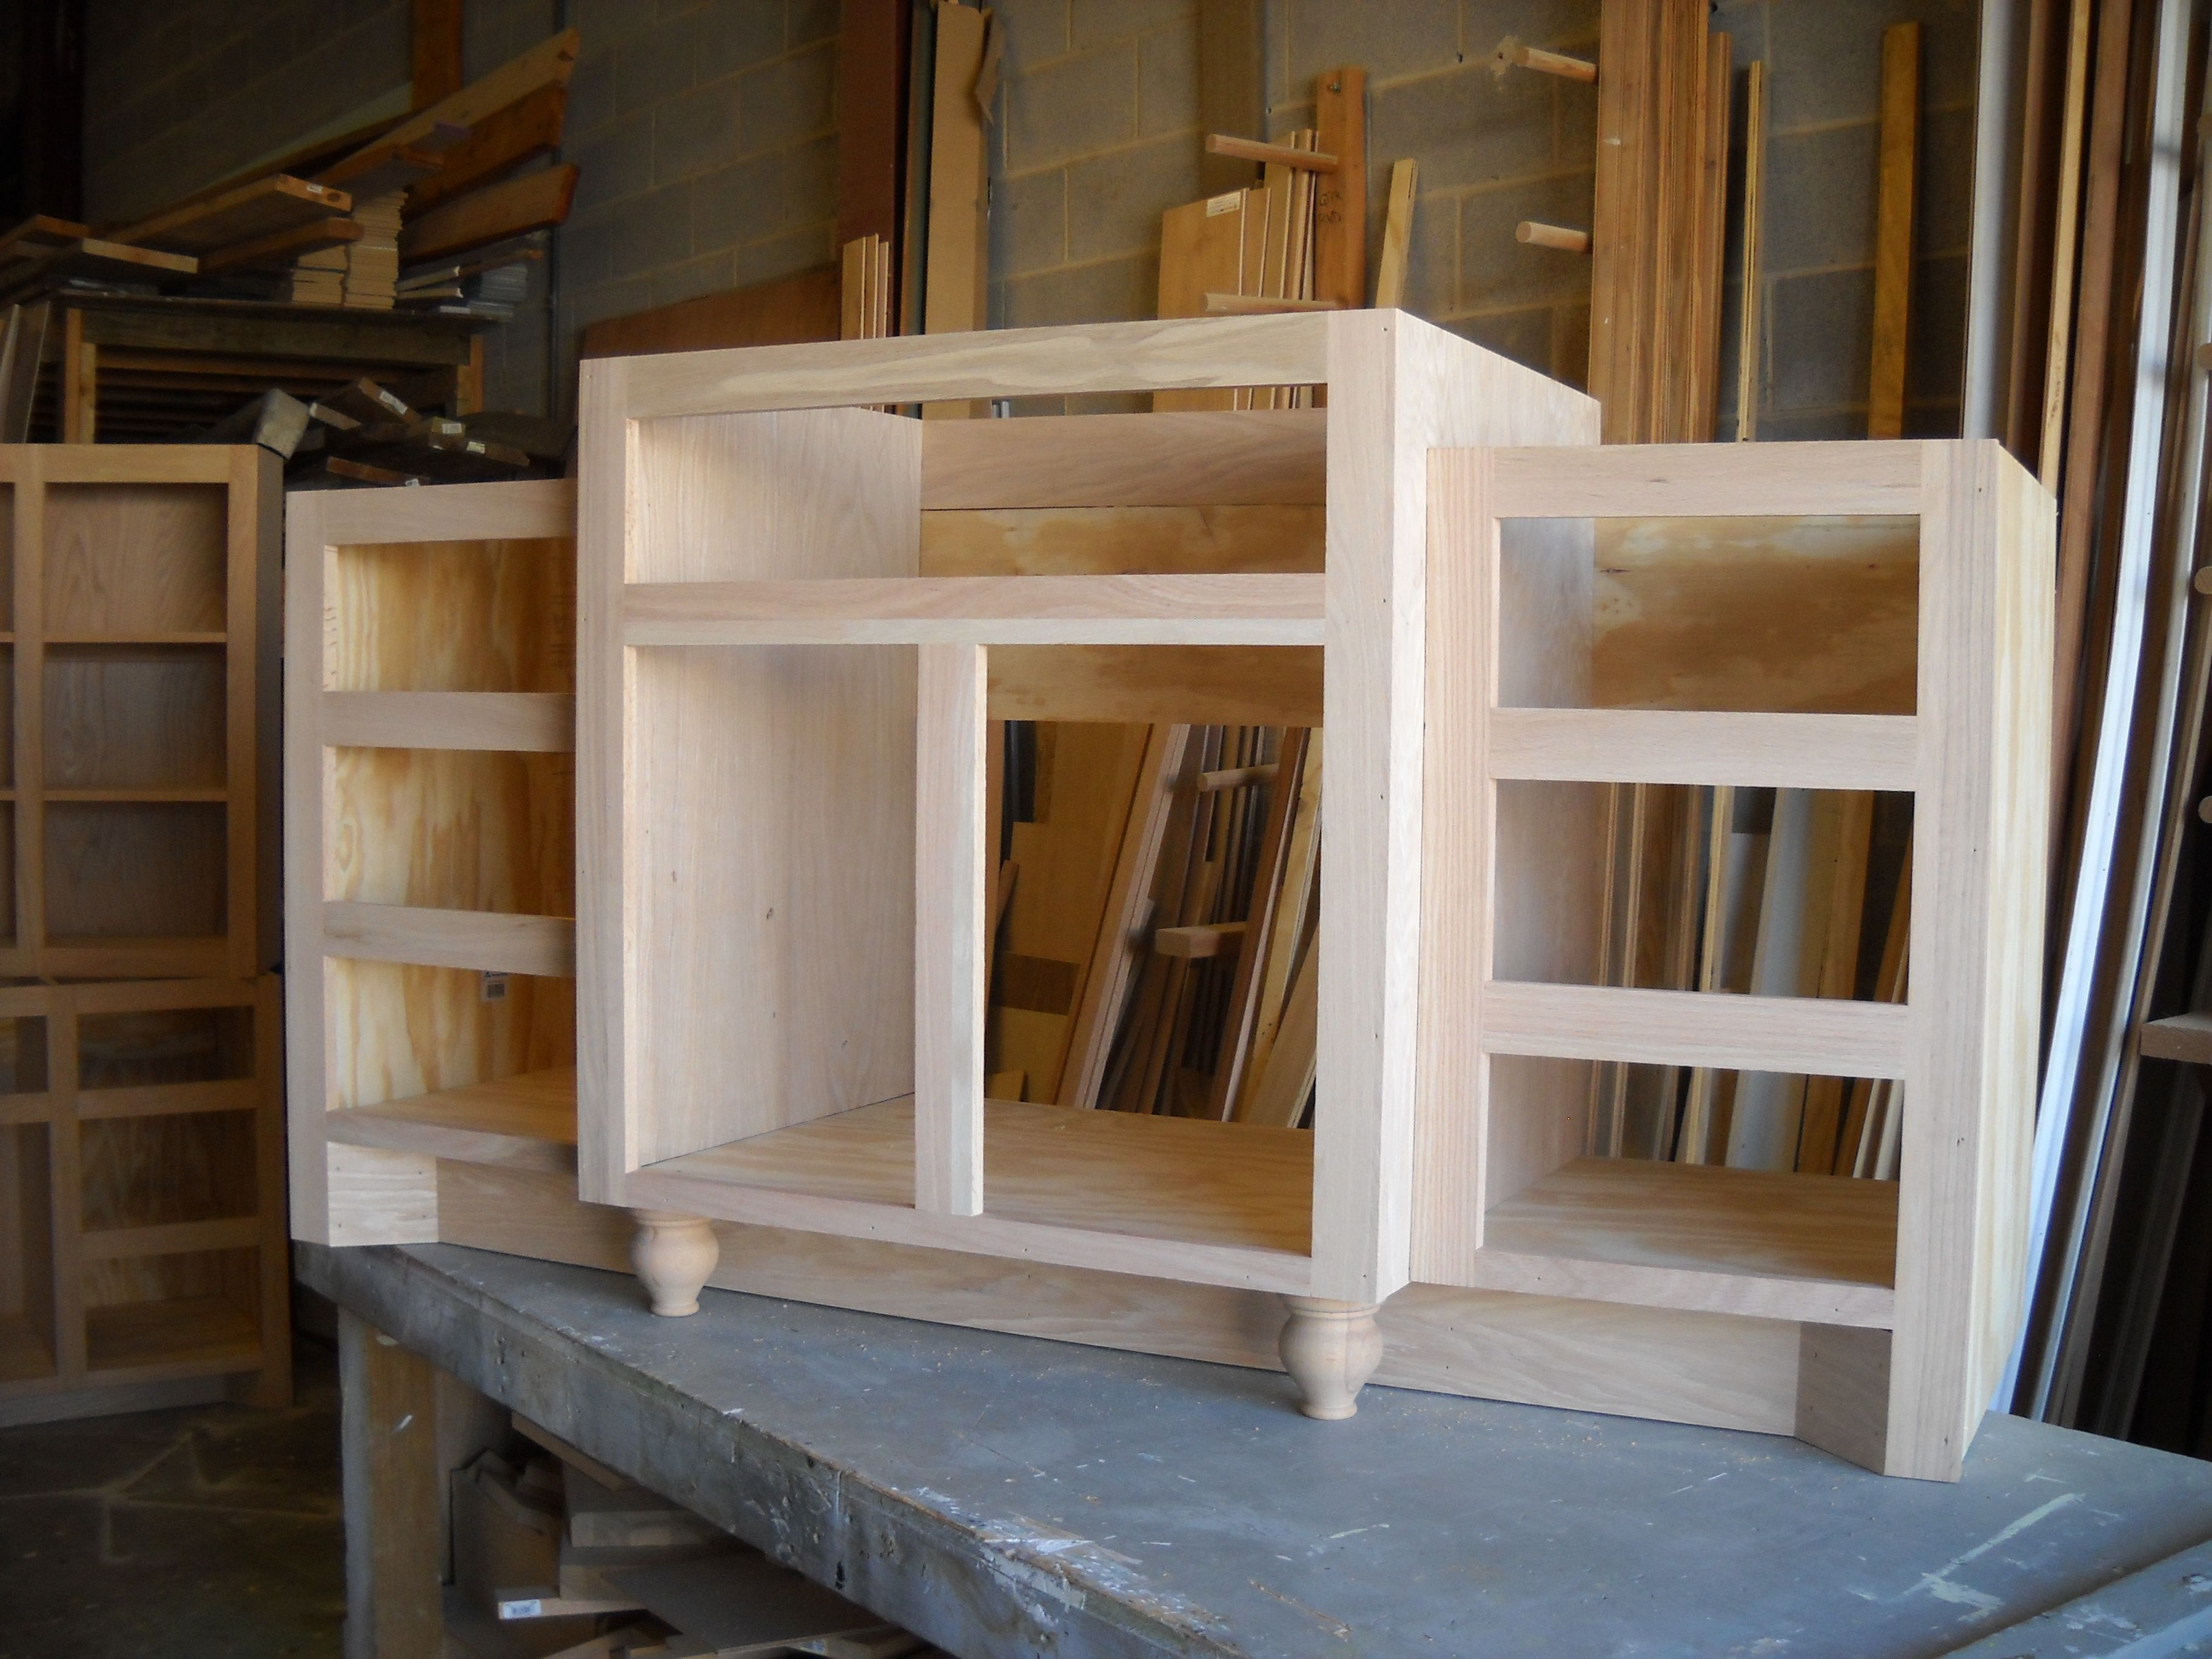 woodworking building a bathroom vanity from scratch plans pdf